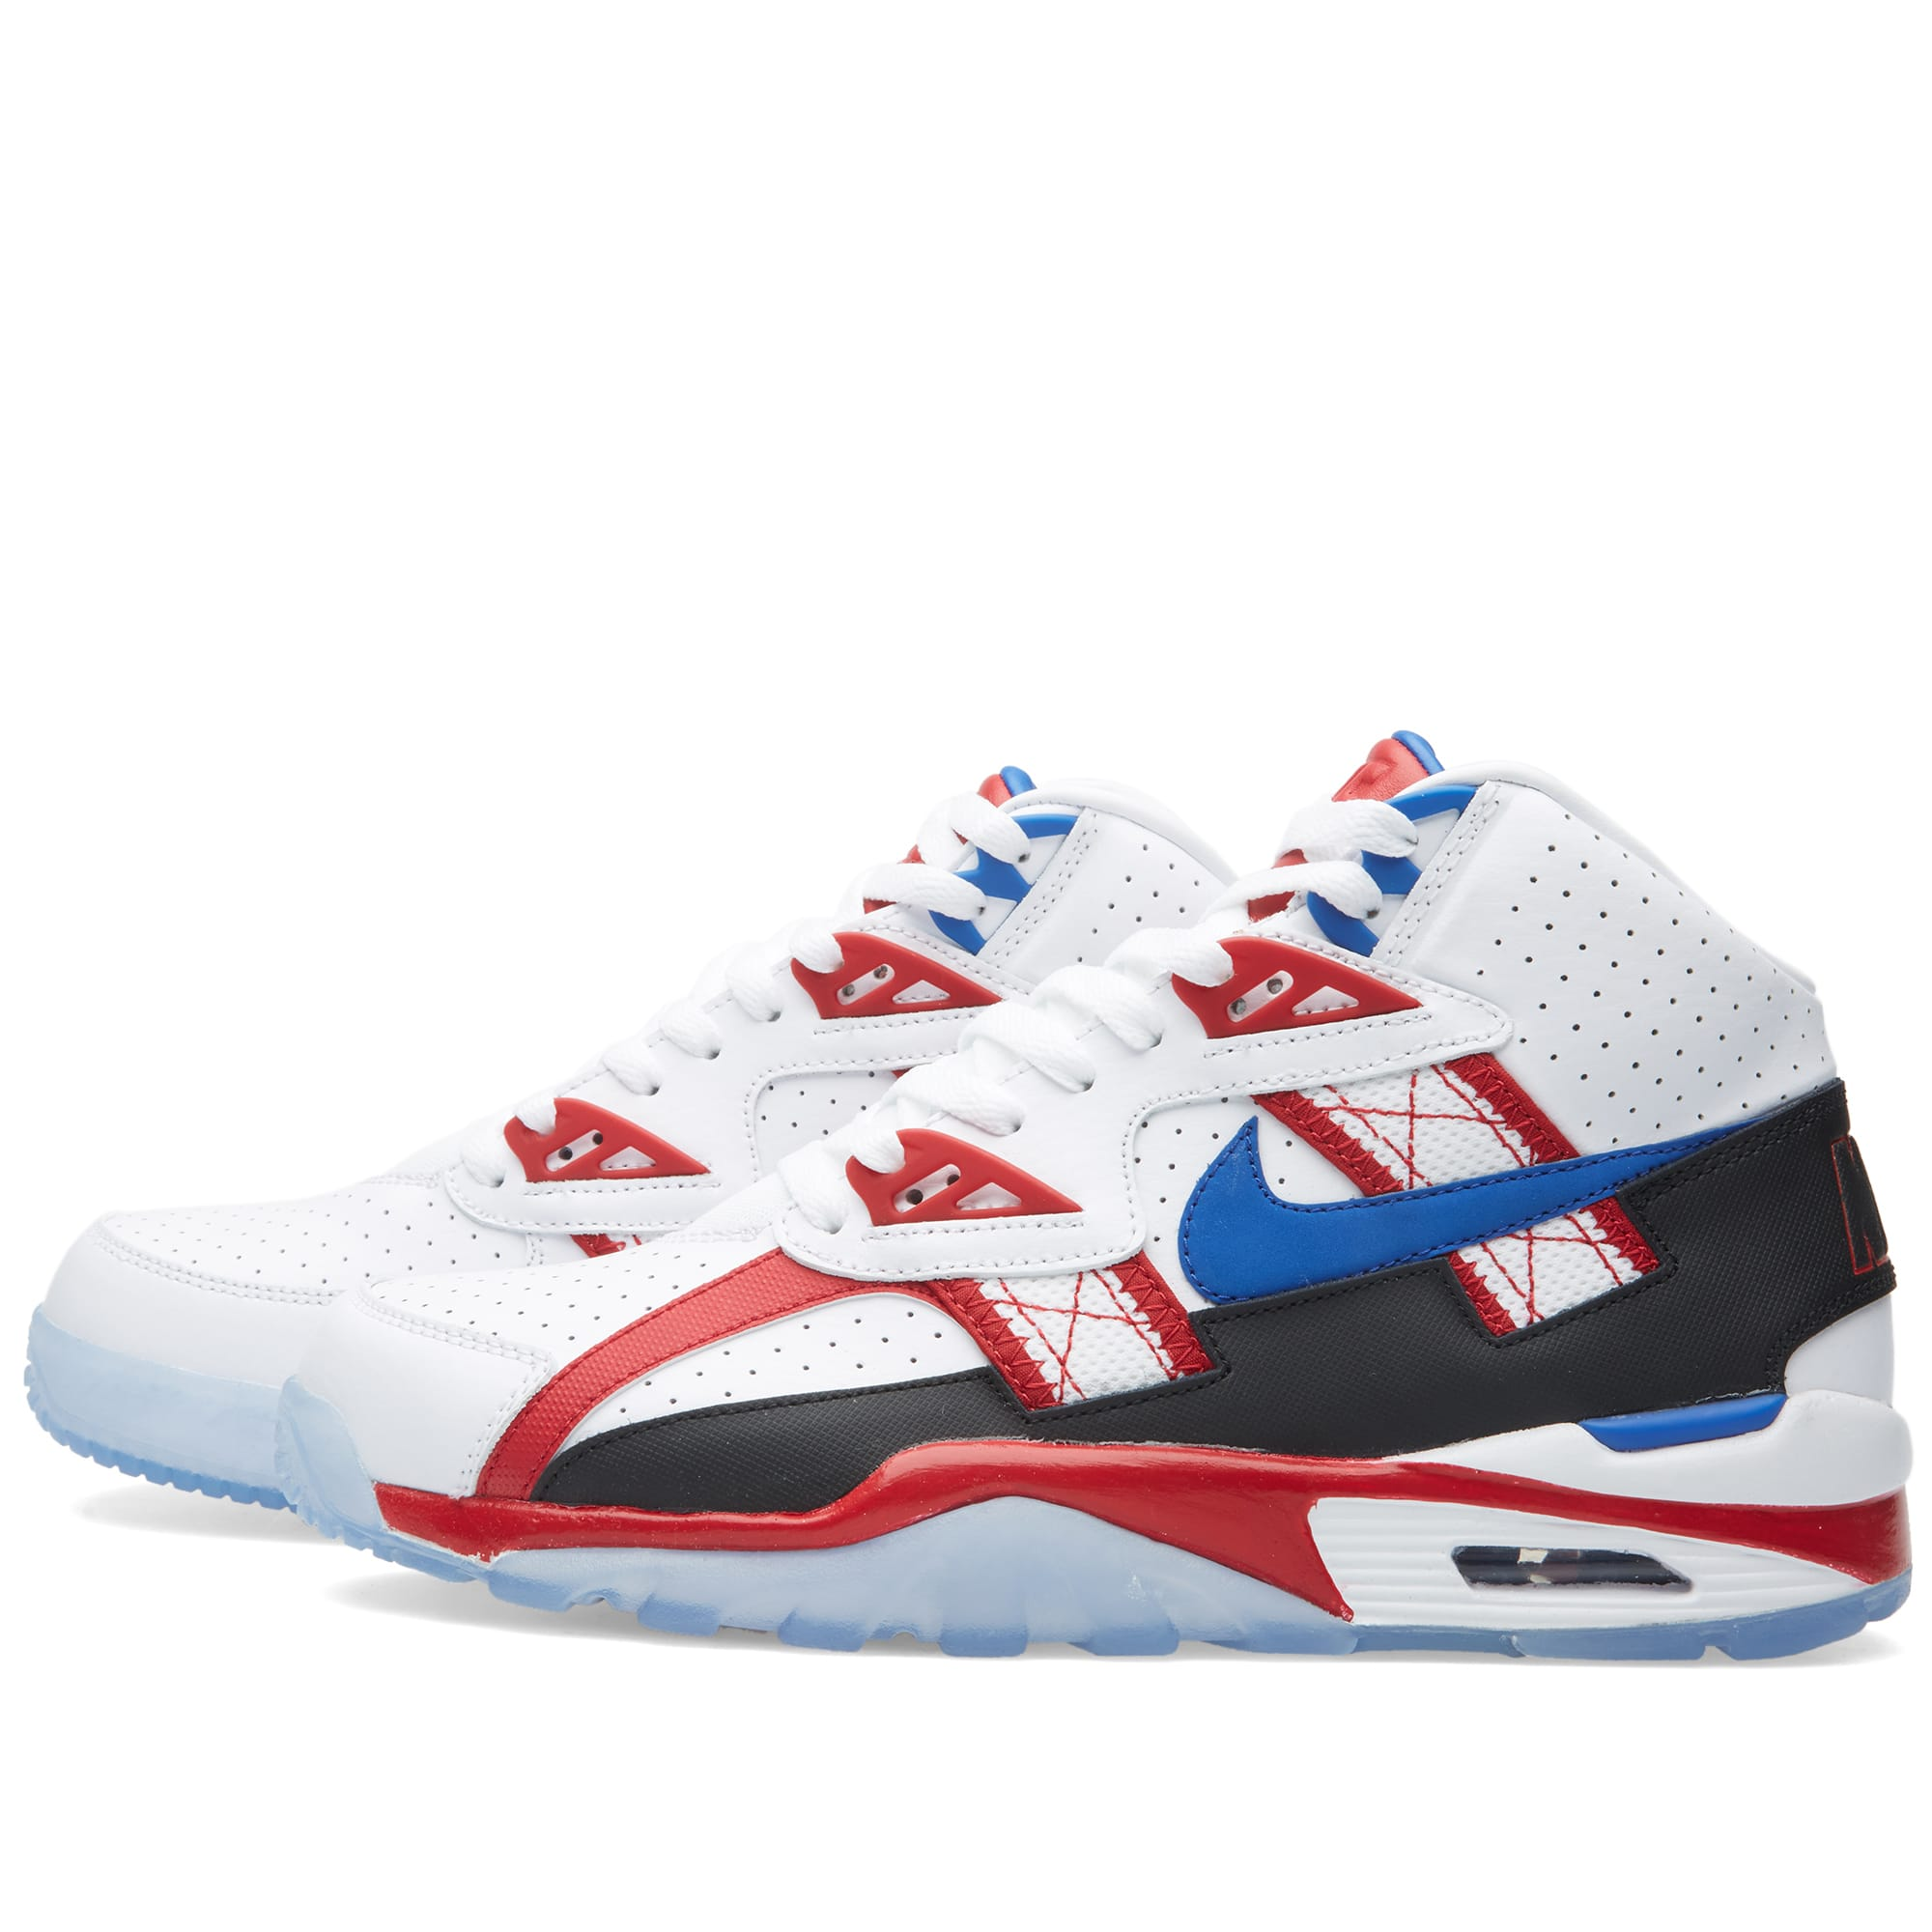 best sneakers a05f8 f7207 Nike Air Trainer SC High LE QS  Bo Knows Dentistry  White, Game Royal   Gym  Red   END.